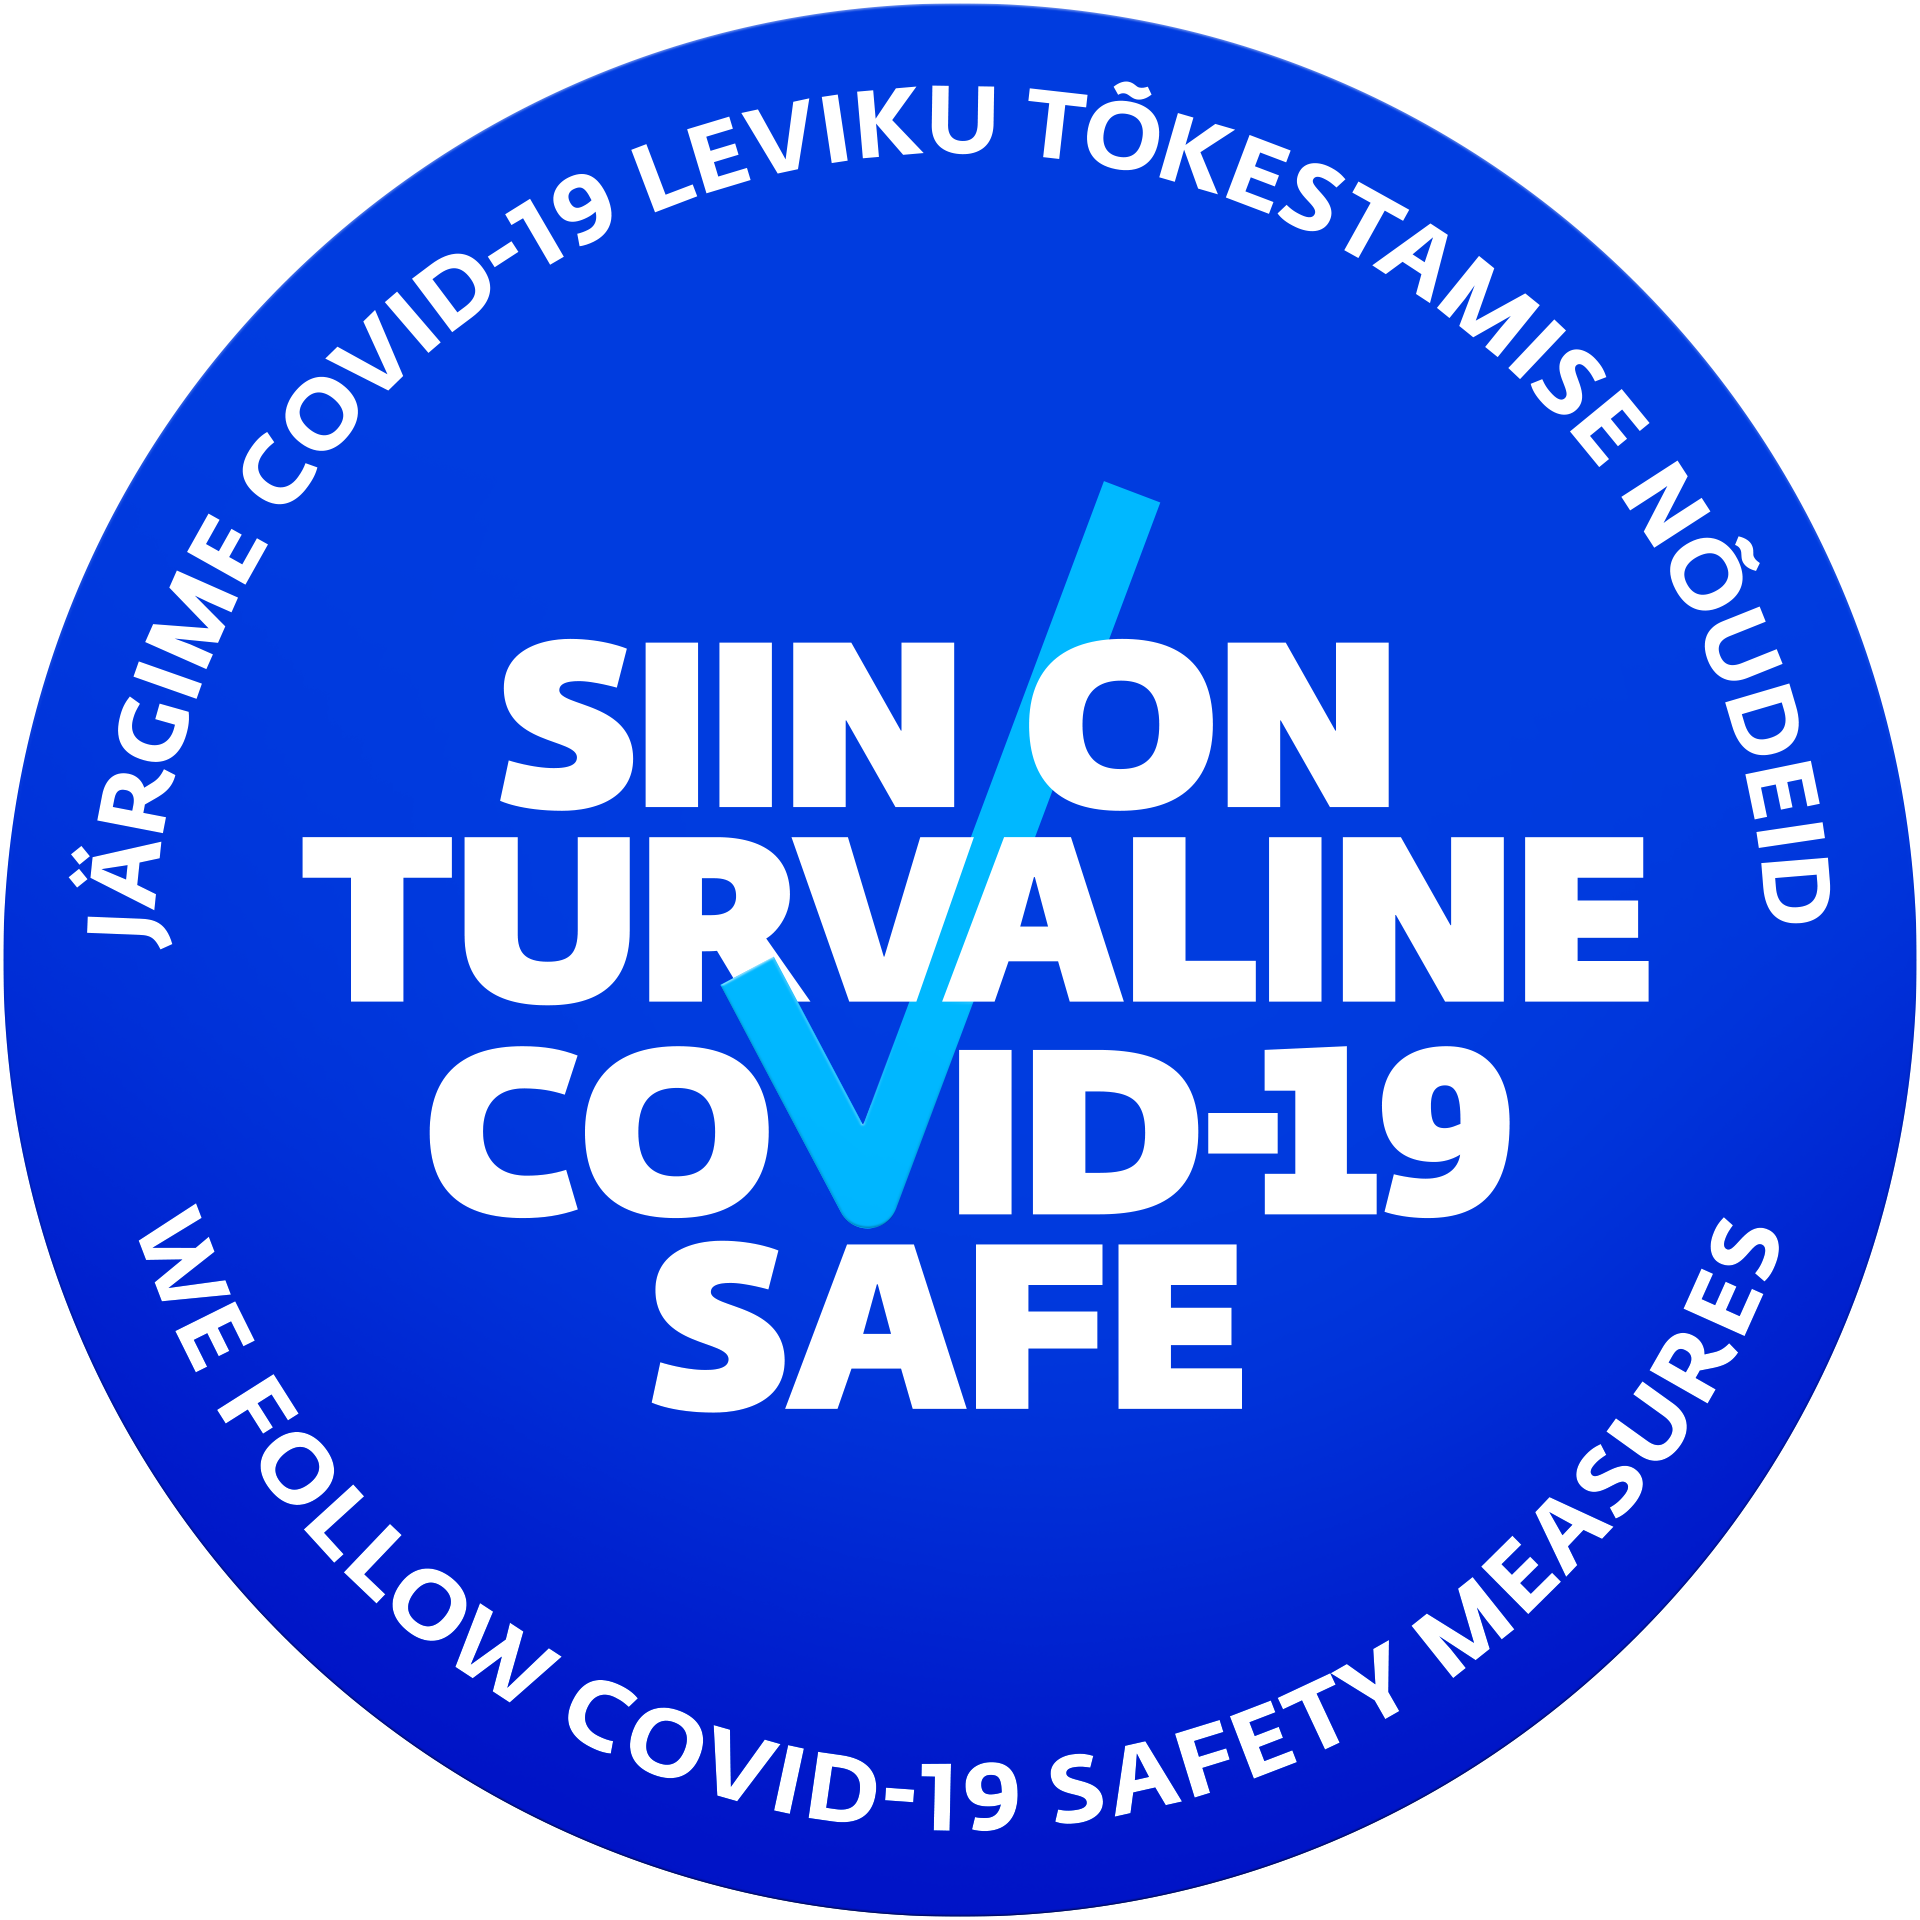 We follow Covid-19 safety measures